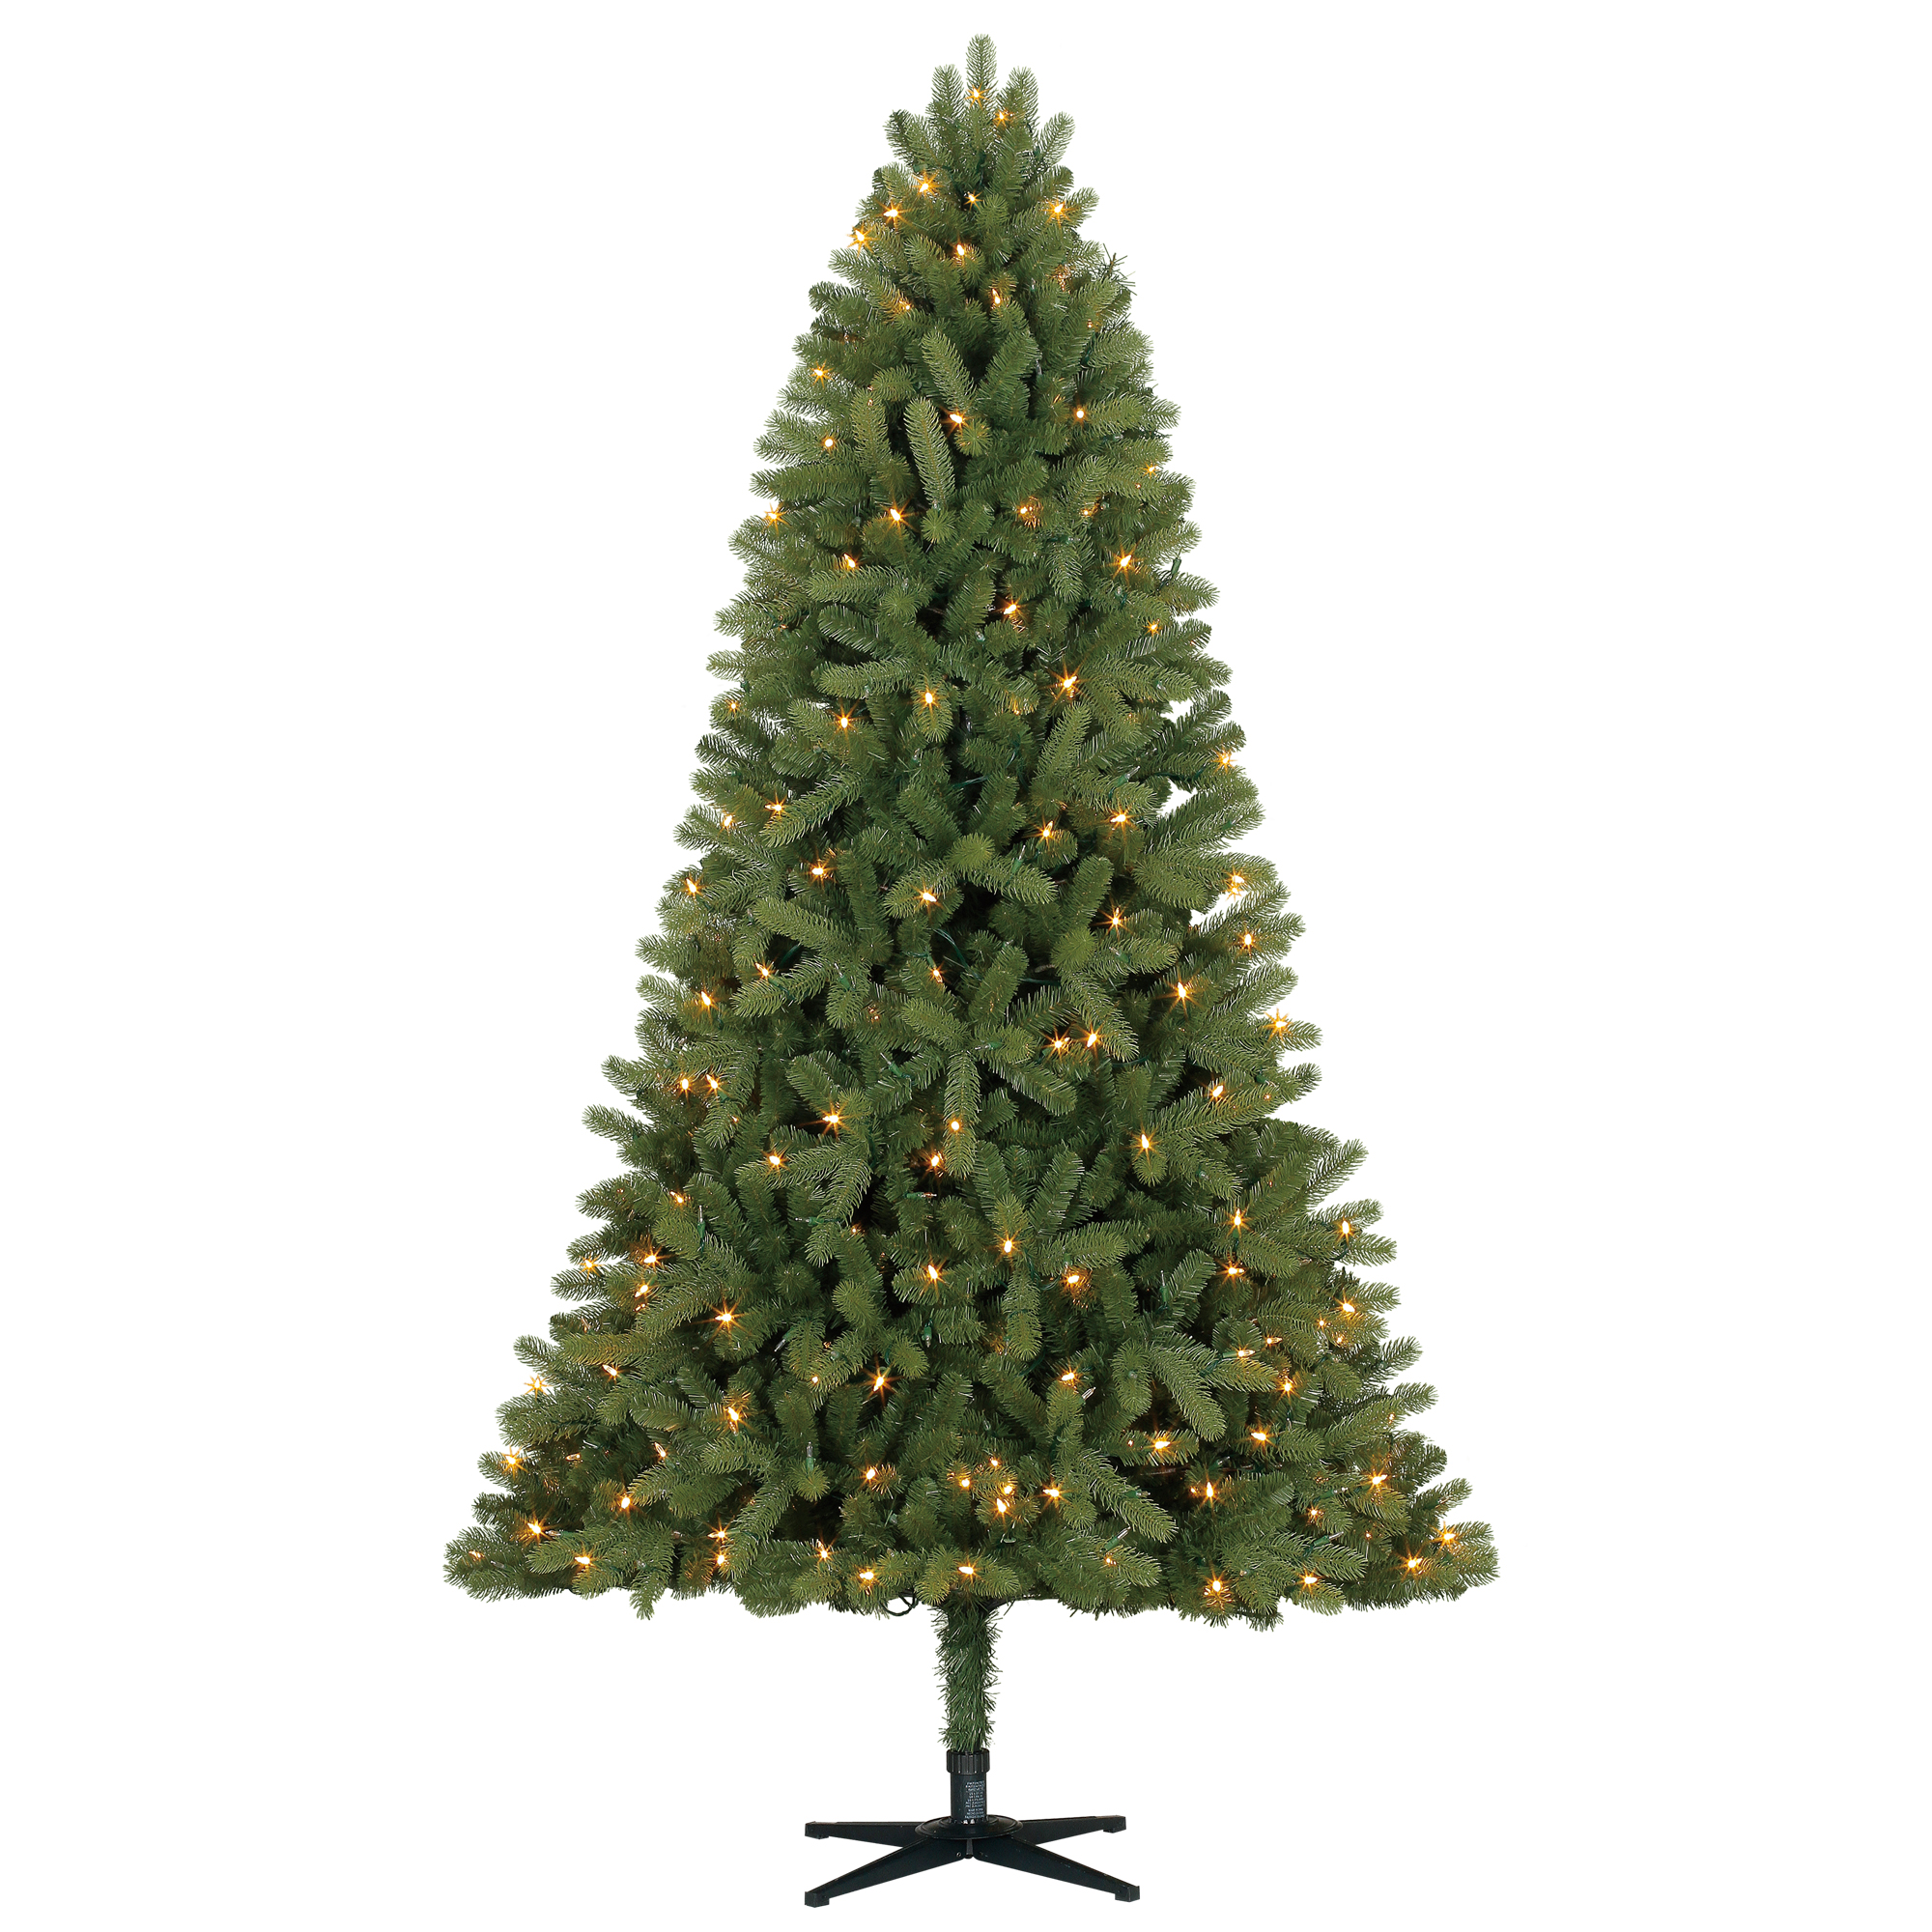 Holiday Time 7.5ft Pre-Lit Whitefield Fir Artificial Christmas Tree with 480 LED Color Show Lights - Green